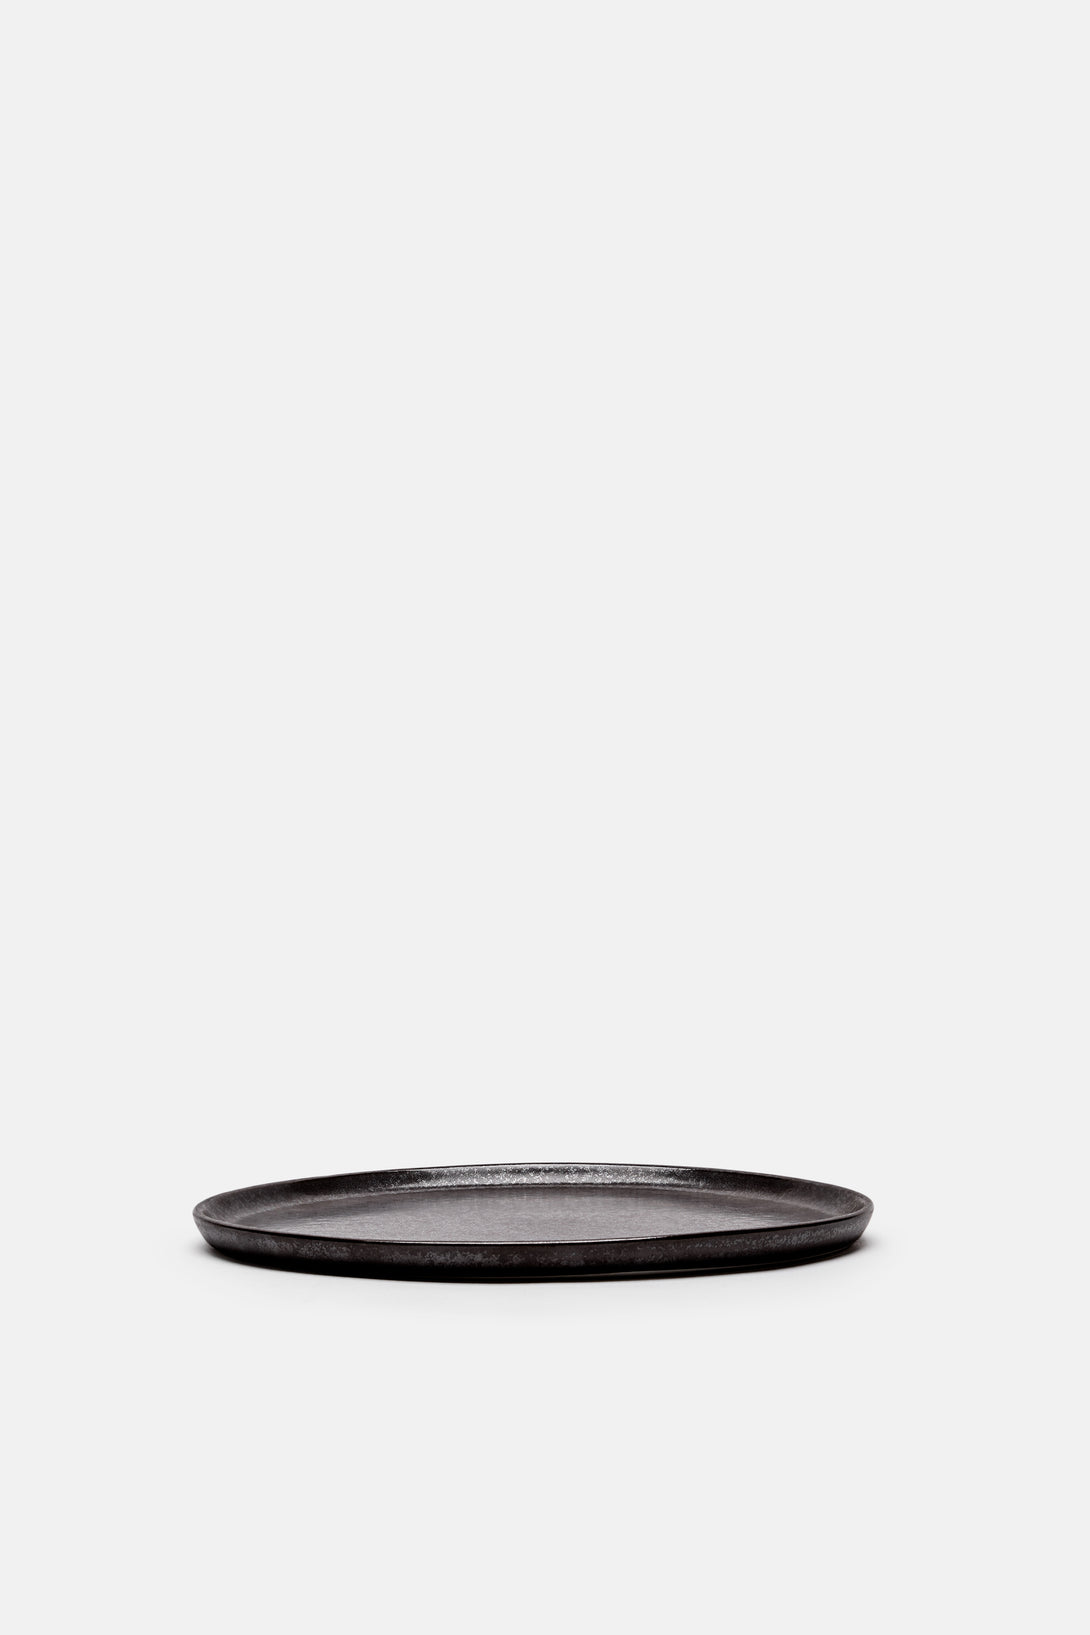 Esrum Small Oval Plate - Night